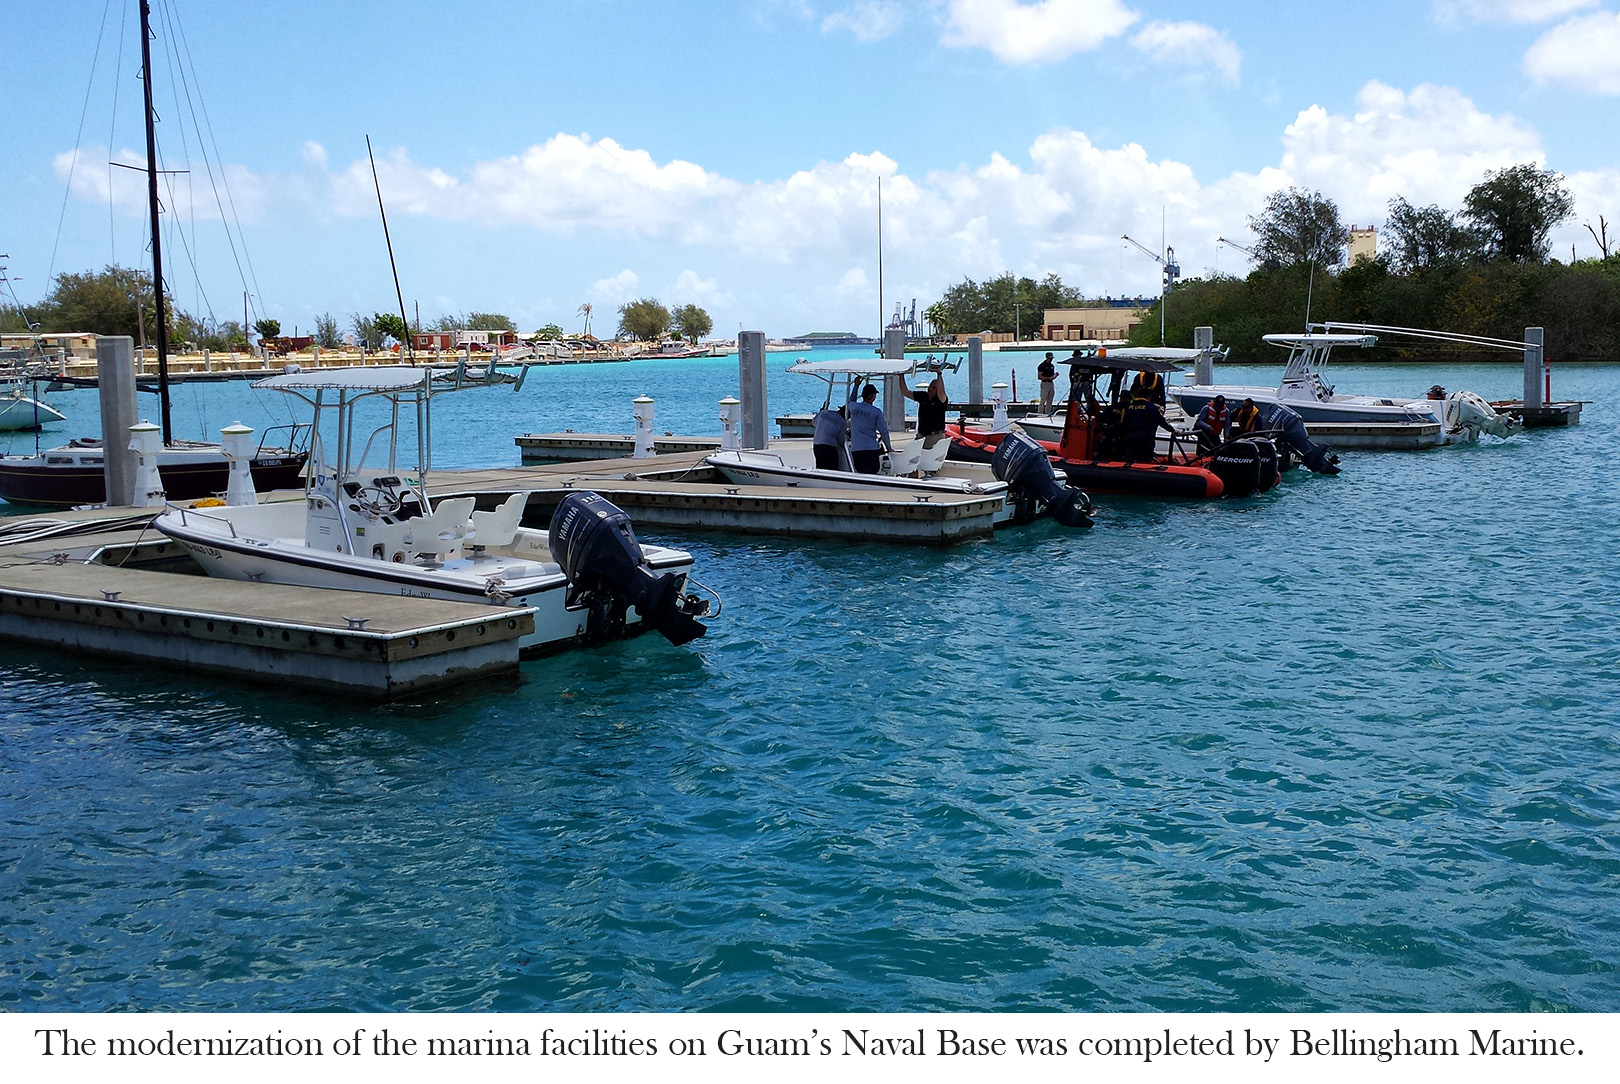 The marina at Sumay Cove features concrete floating docks